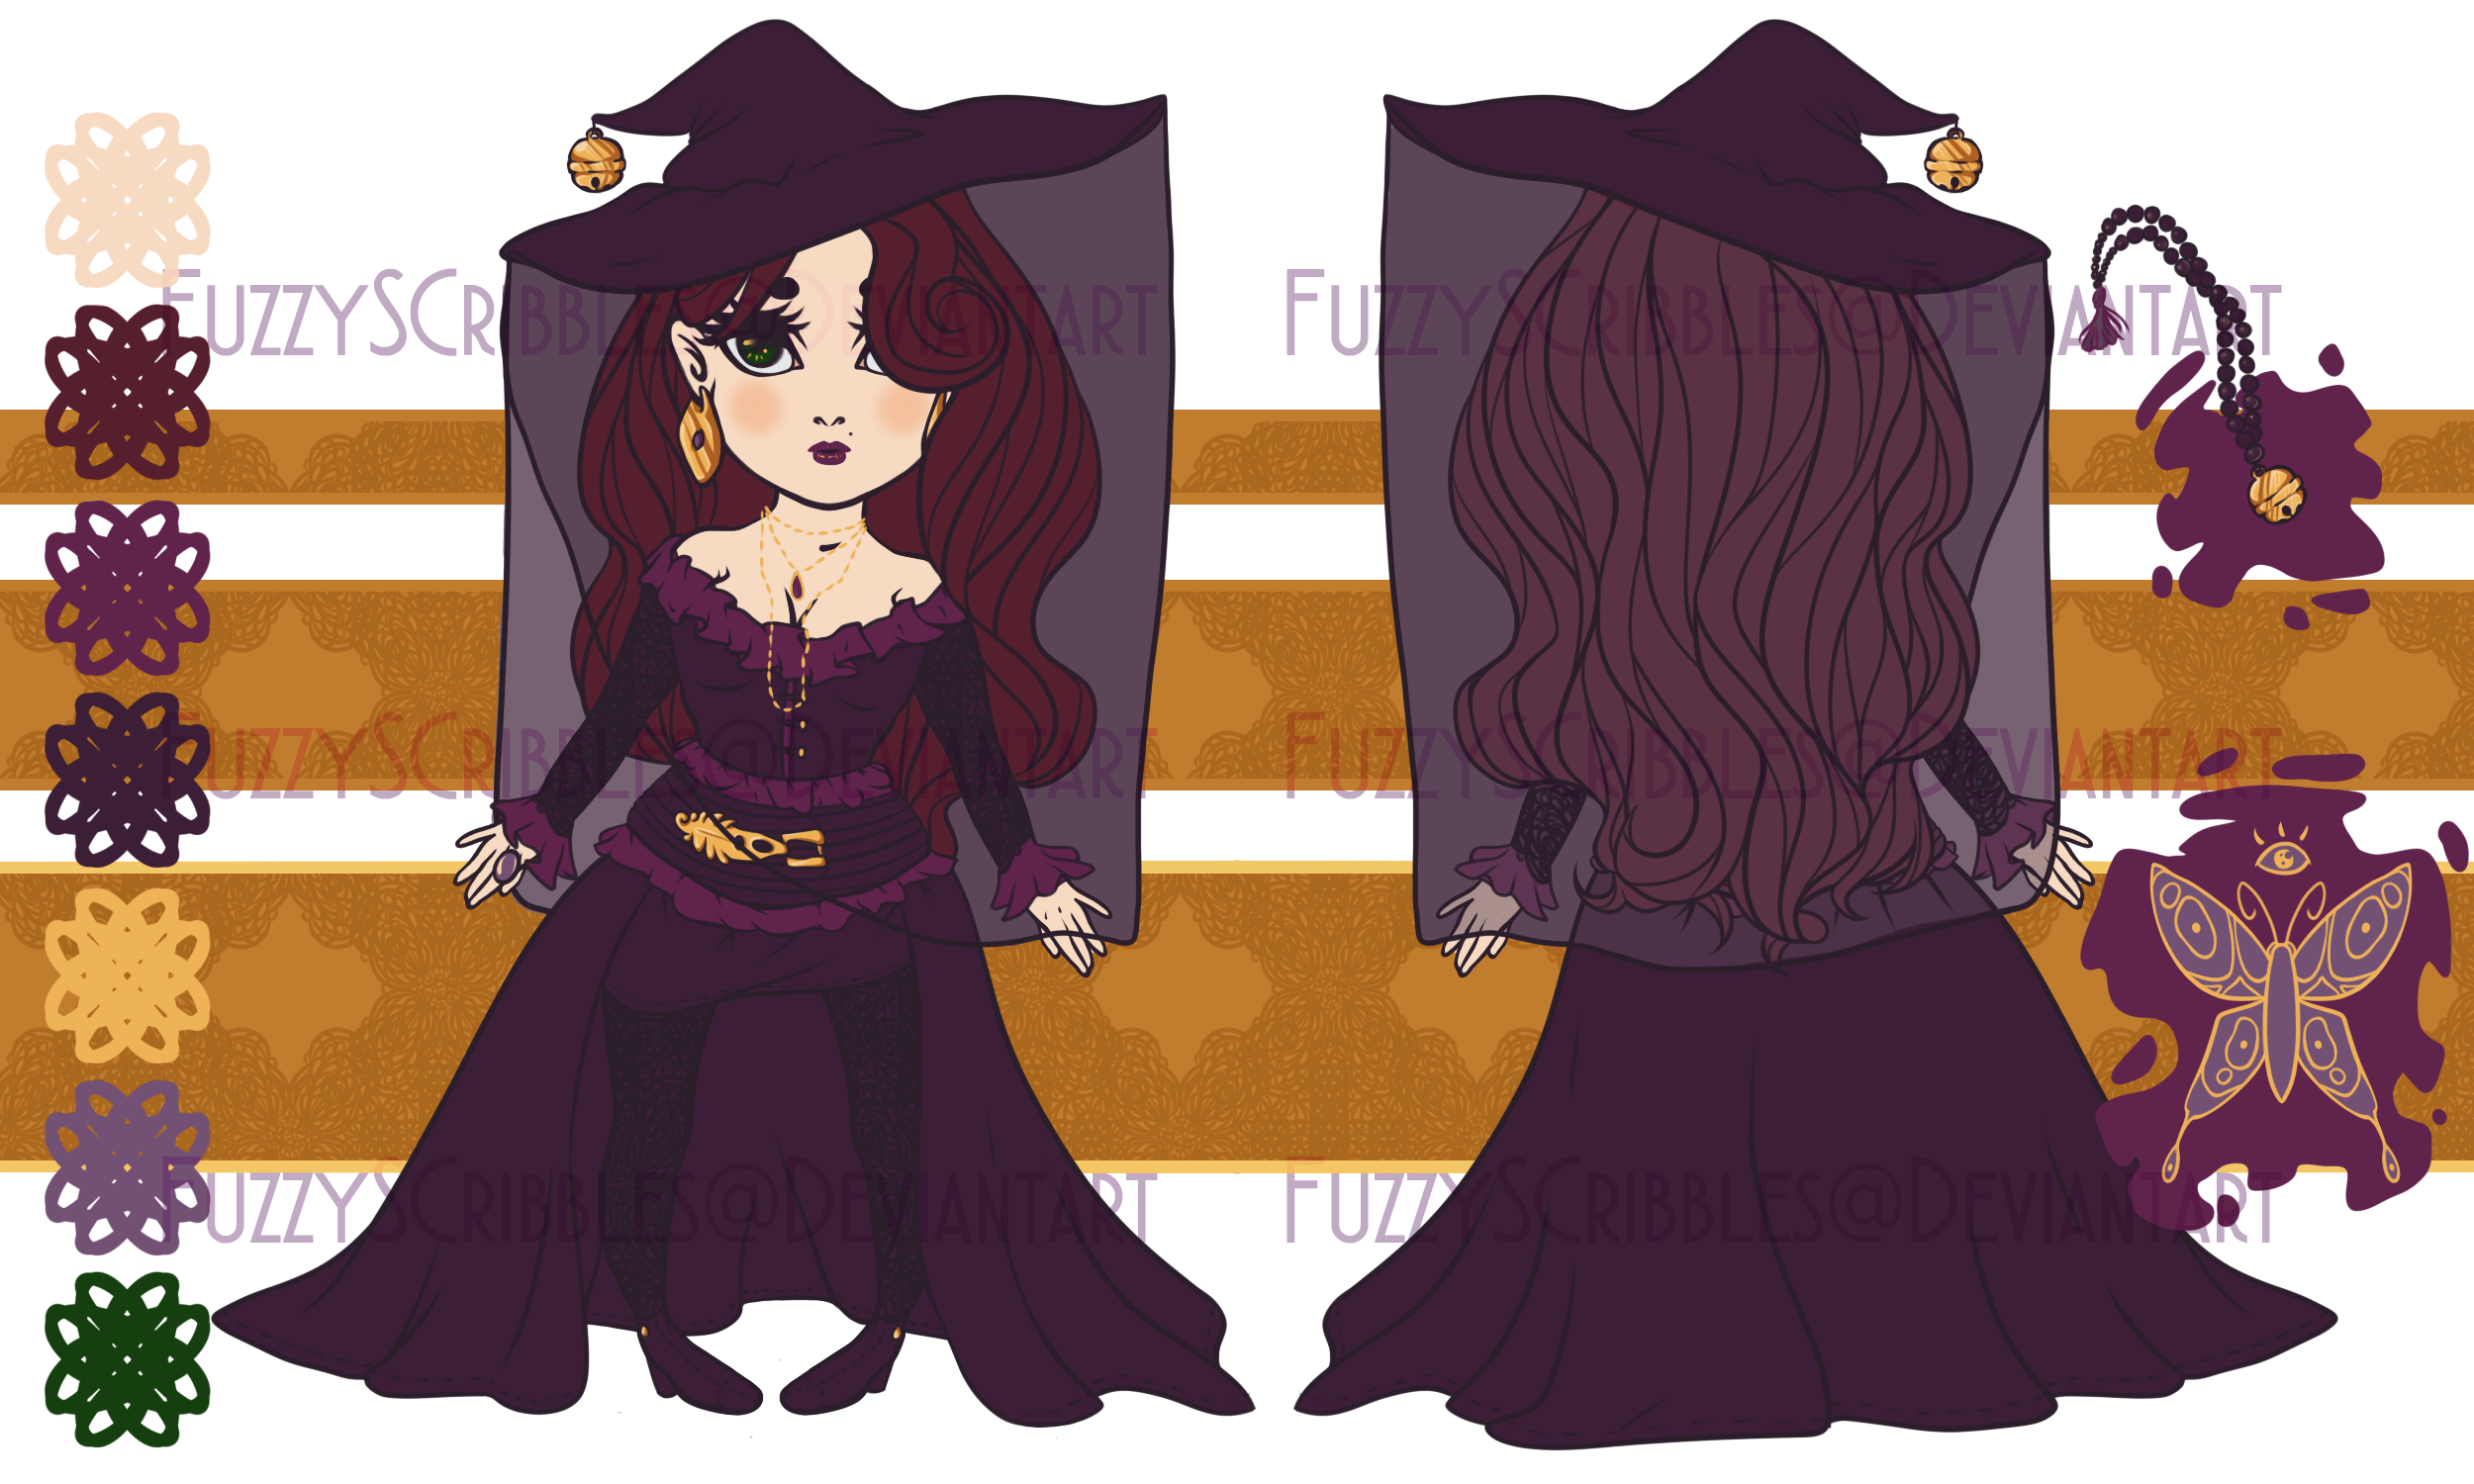 The Seer [Adopt] AVAILABLE 9USD